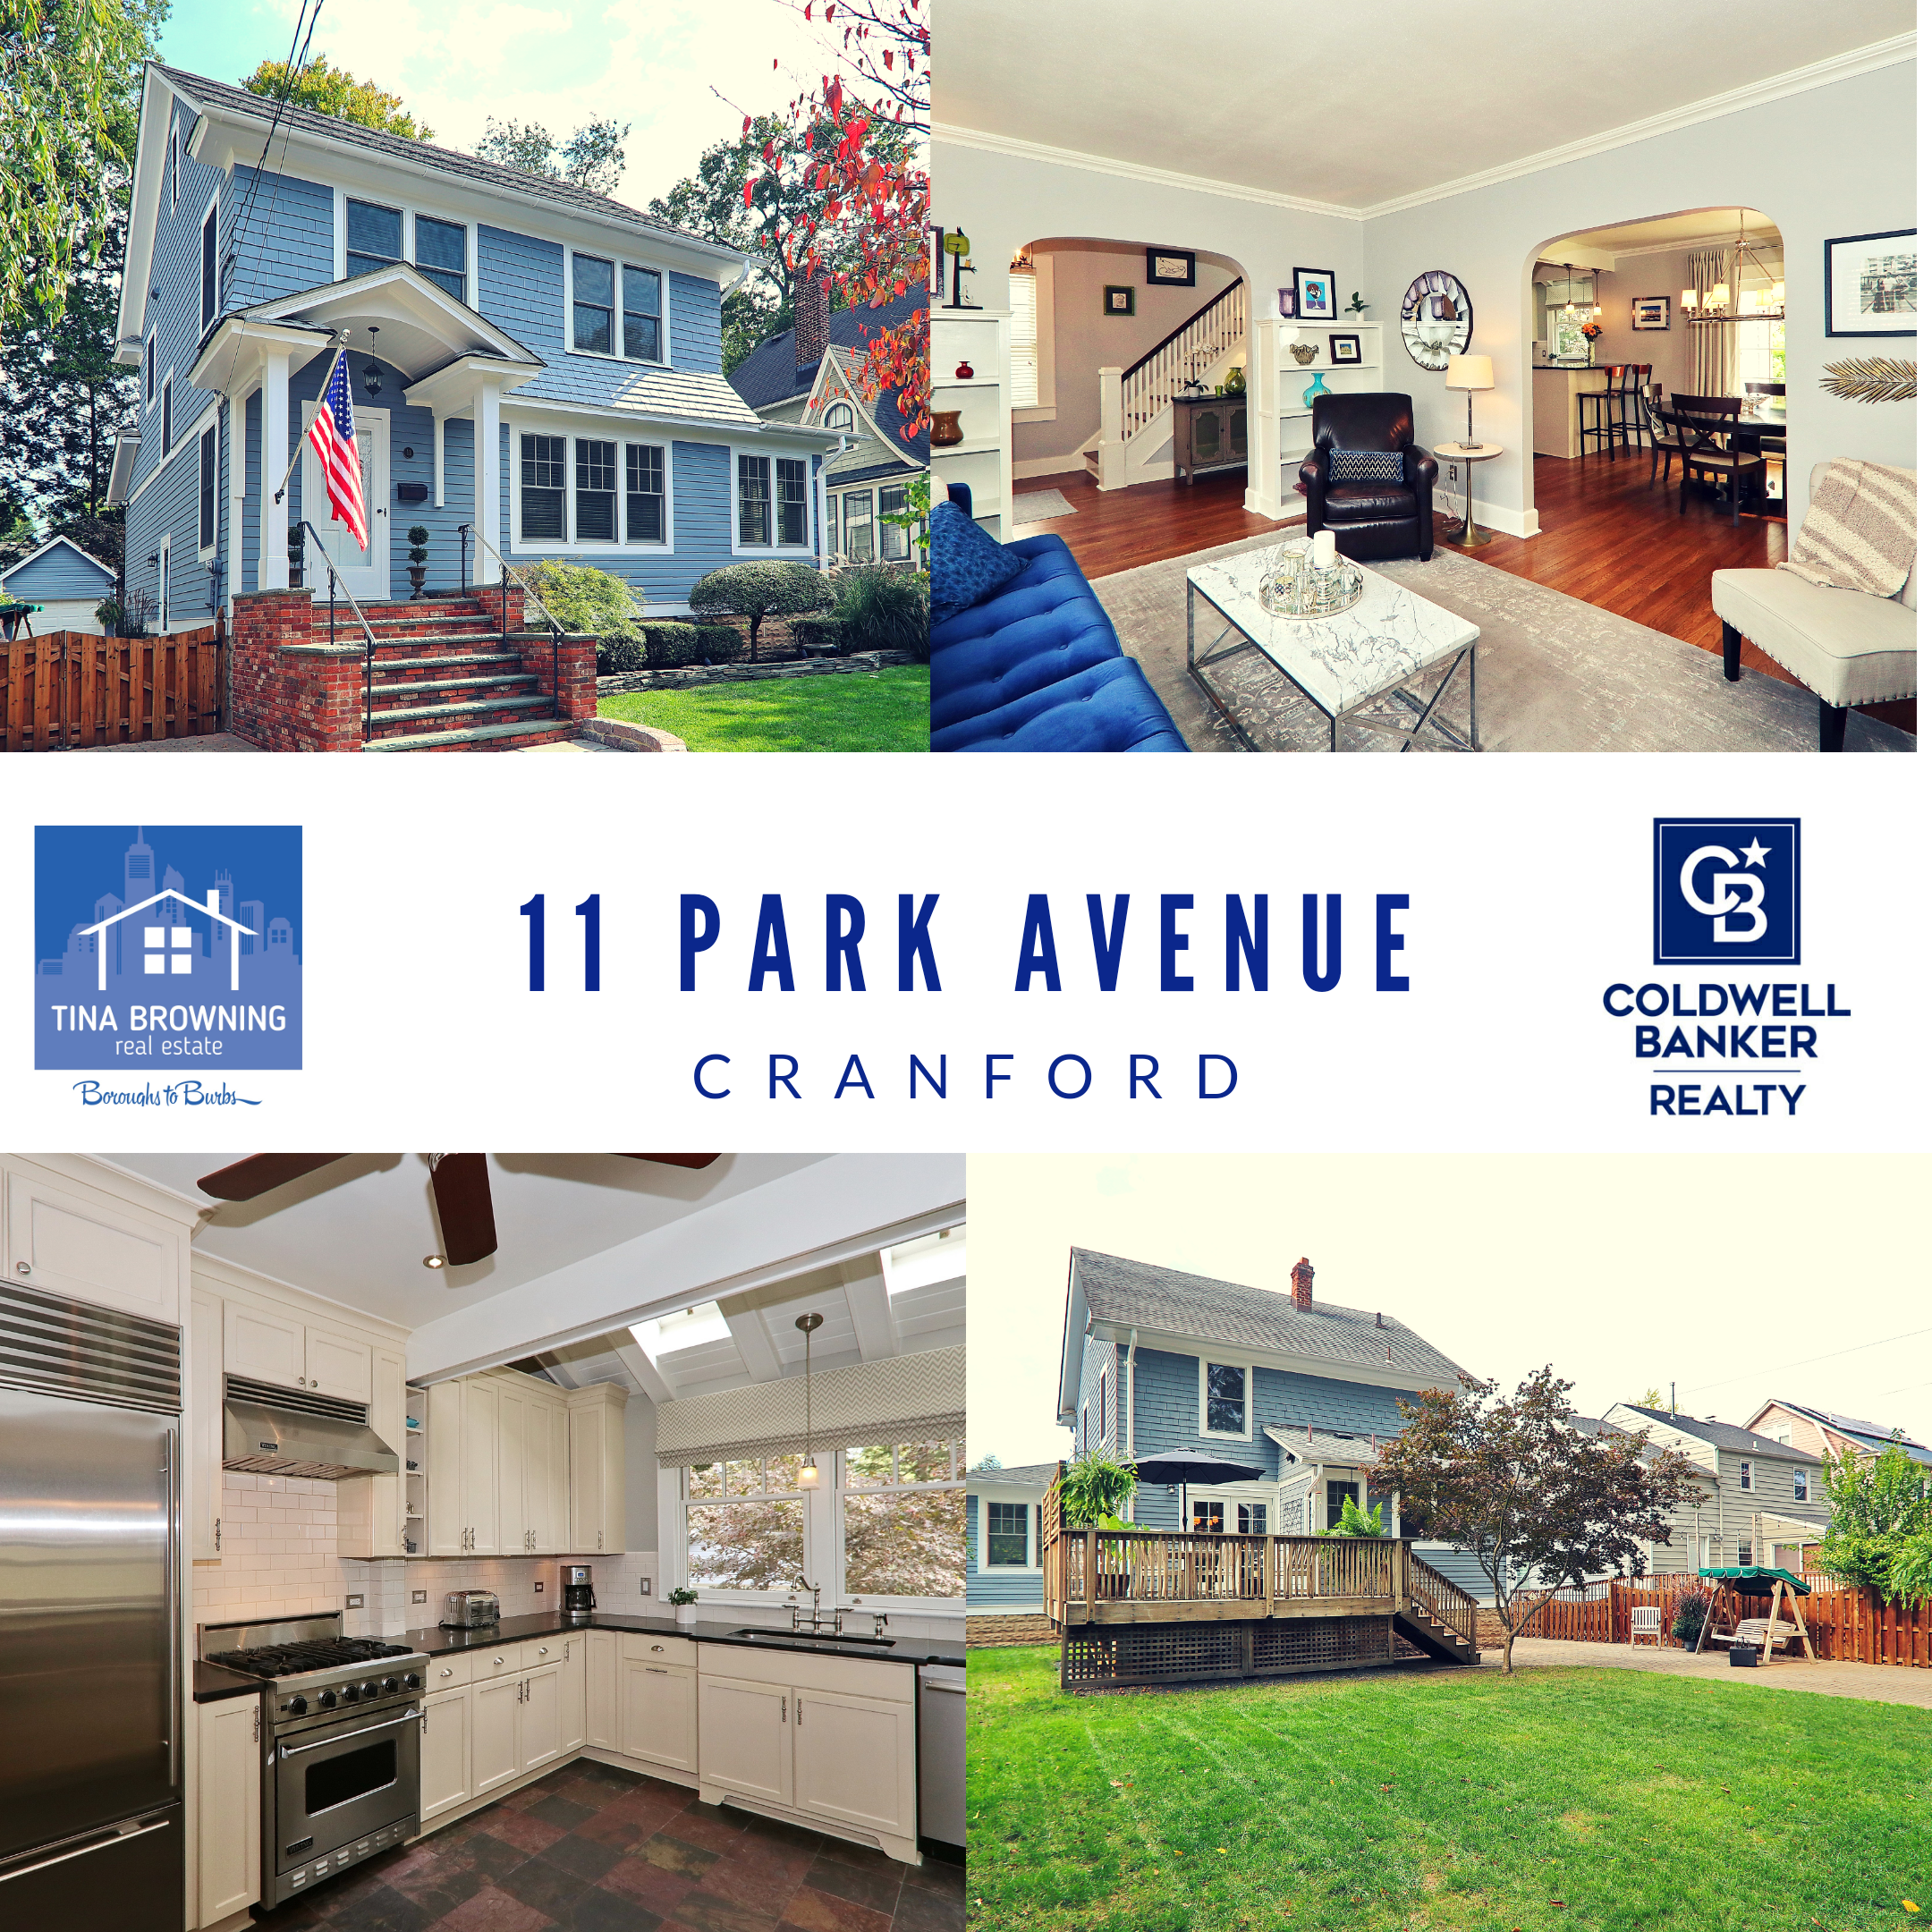 Welcome to 11 Park Avenue, Cranford!